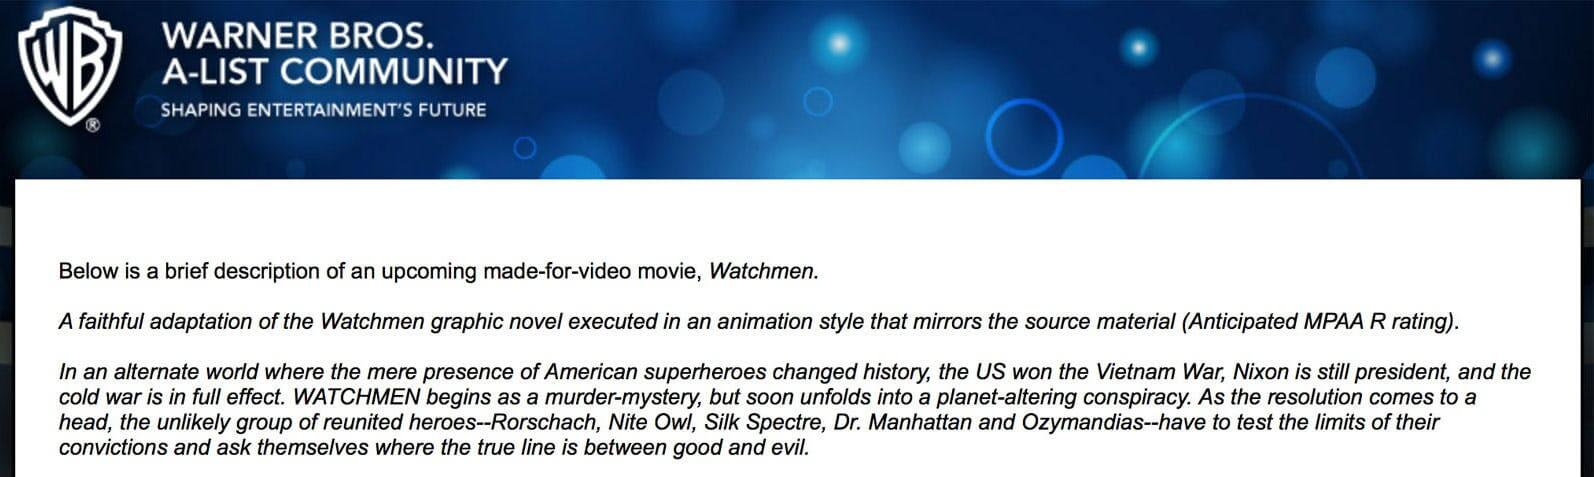 http://www.cbr.com/watchmen-r-rated-animated-movie/